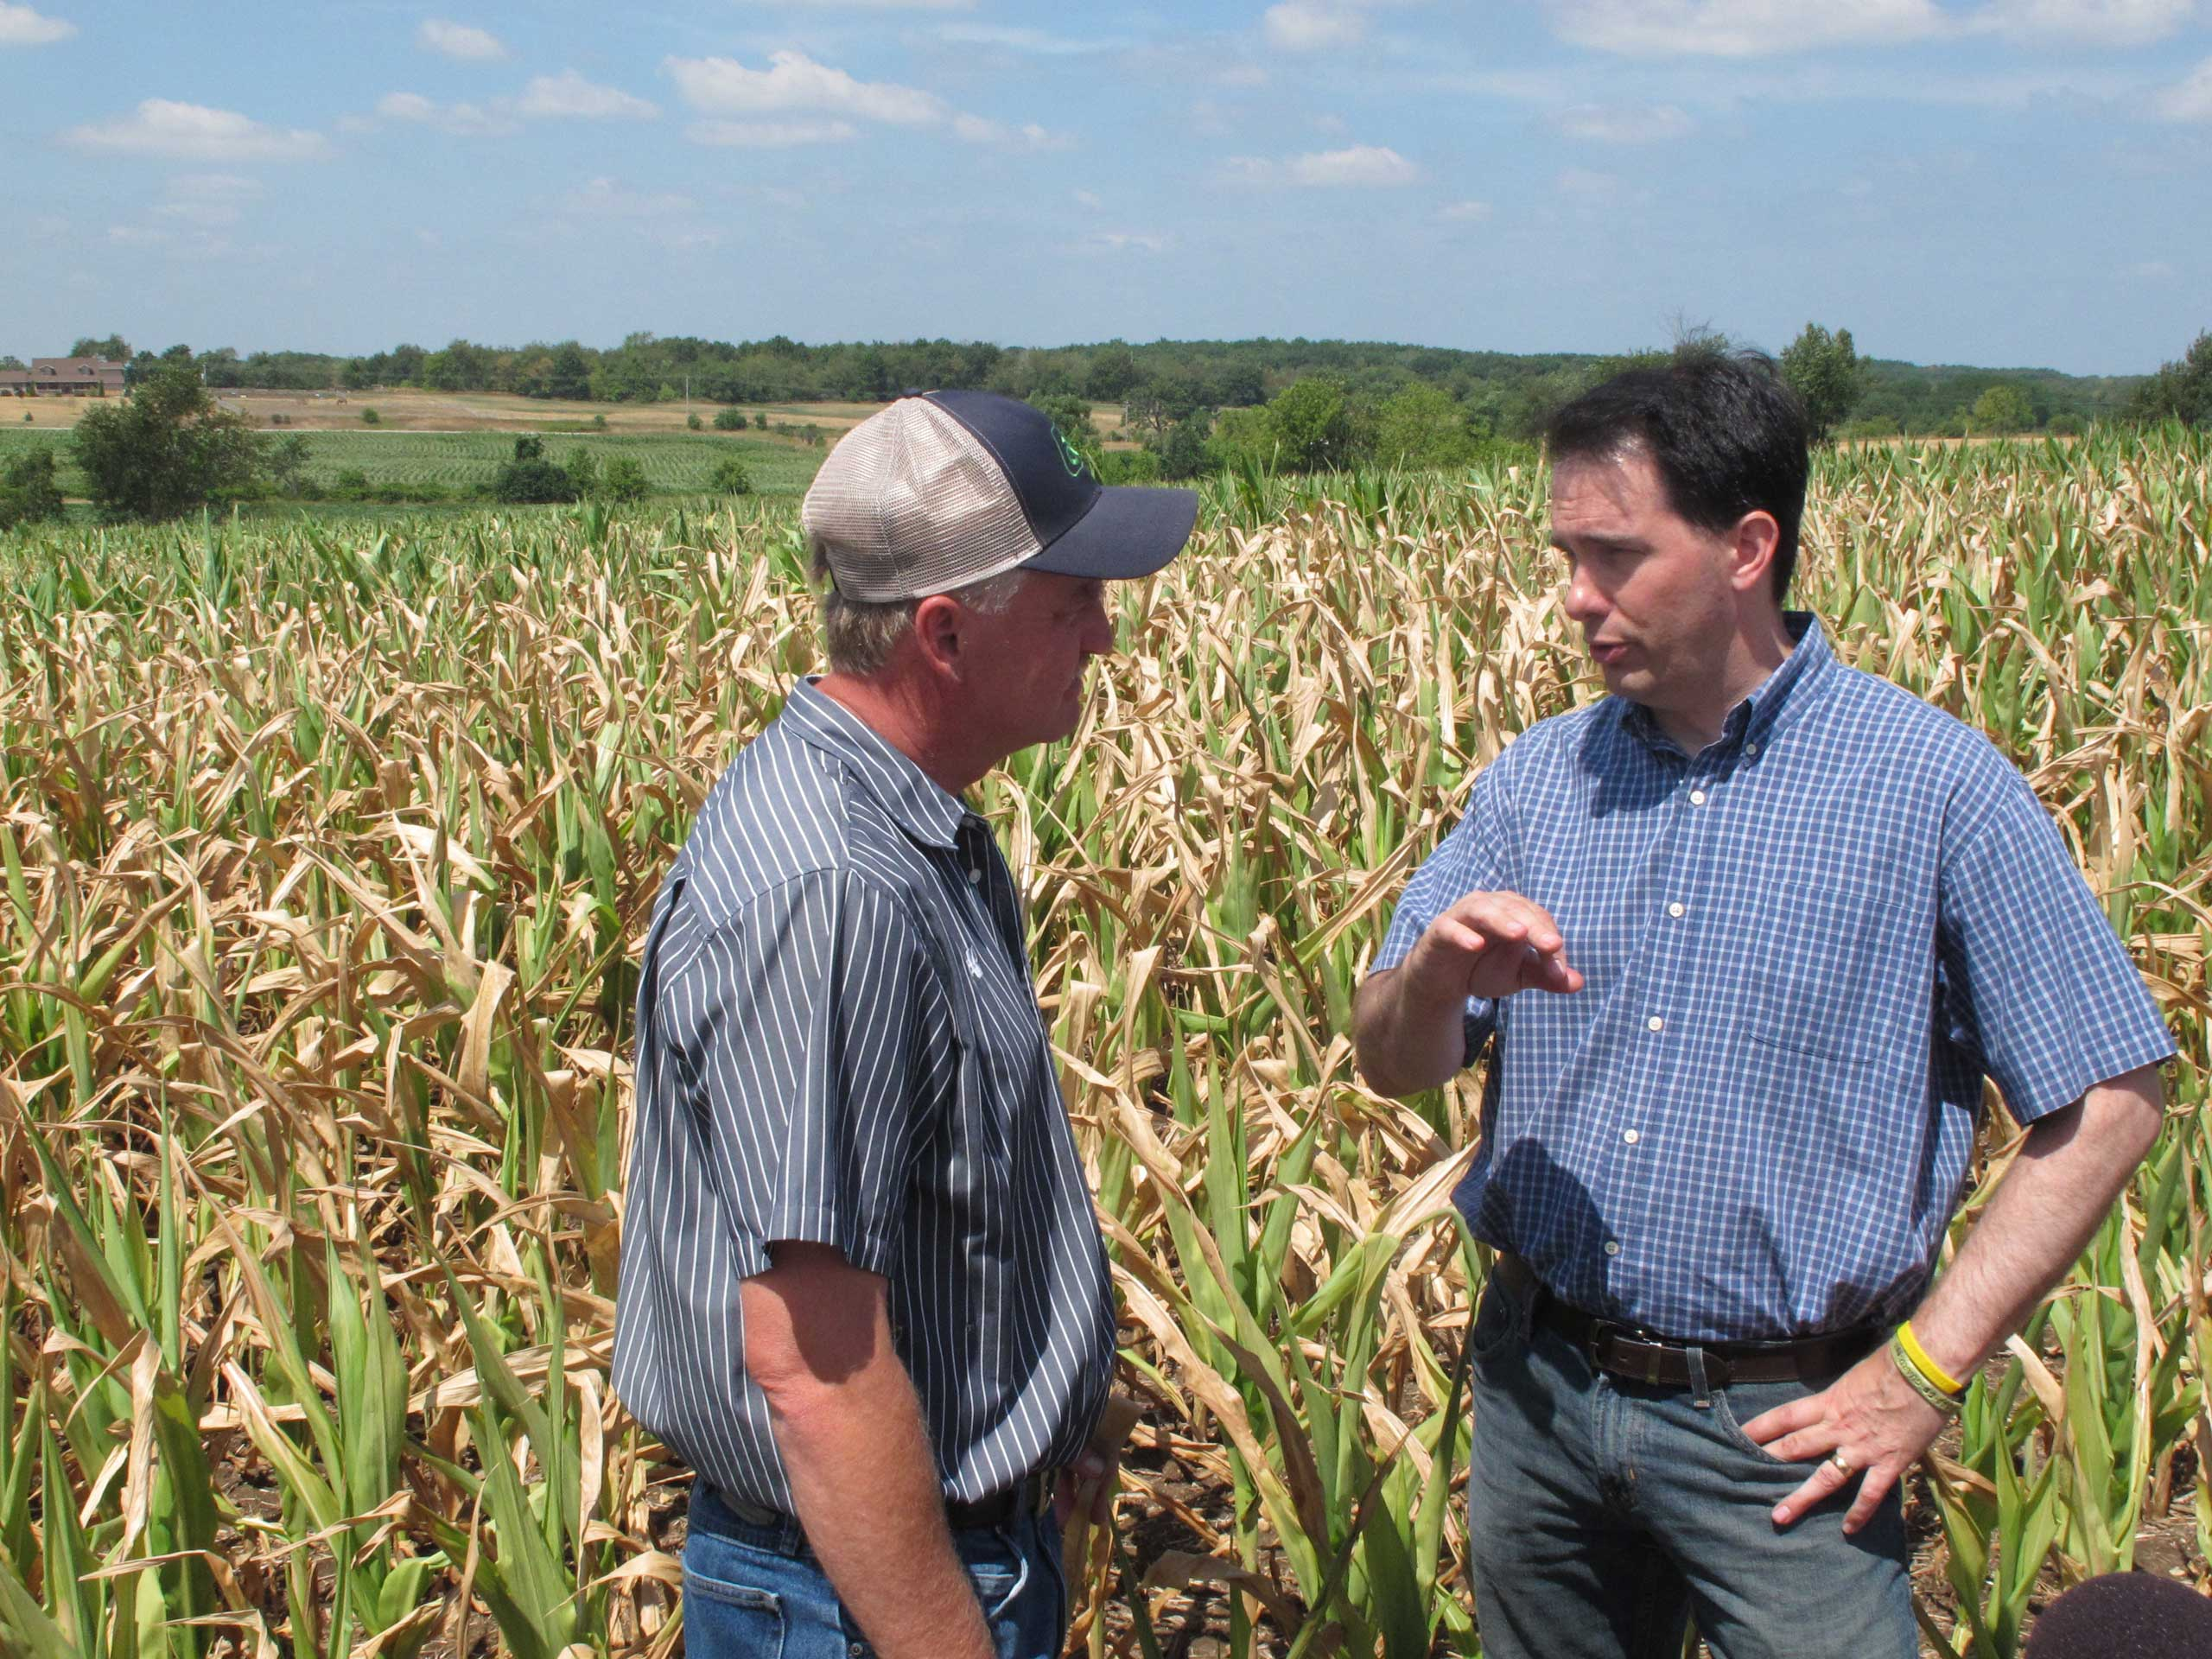 Gov. Scott Walker, right, talks with farmer Jeff Ehrhart about drought damage to his corn crop in the background in Burlington, Wis., on July 20, 2012.